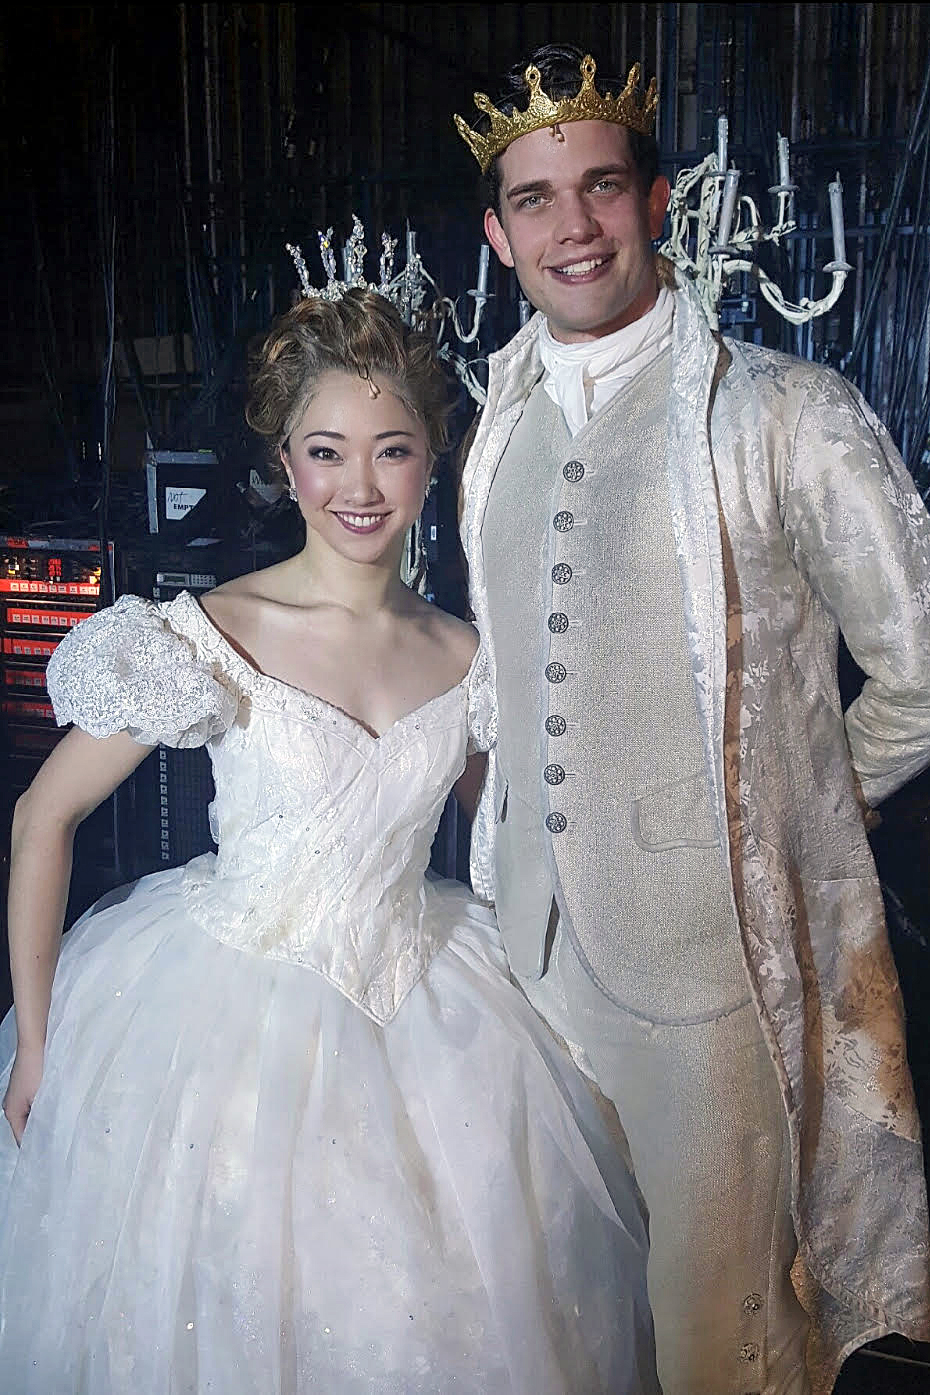 Delphi as Cinderella with Prince Topher